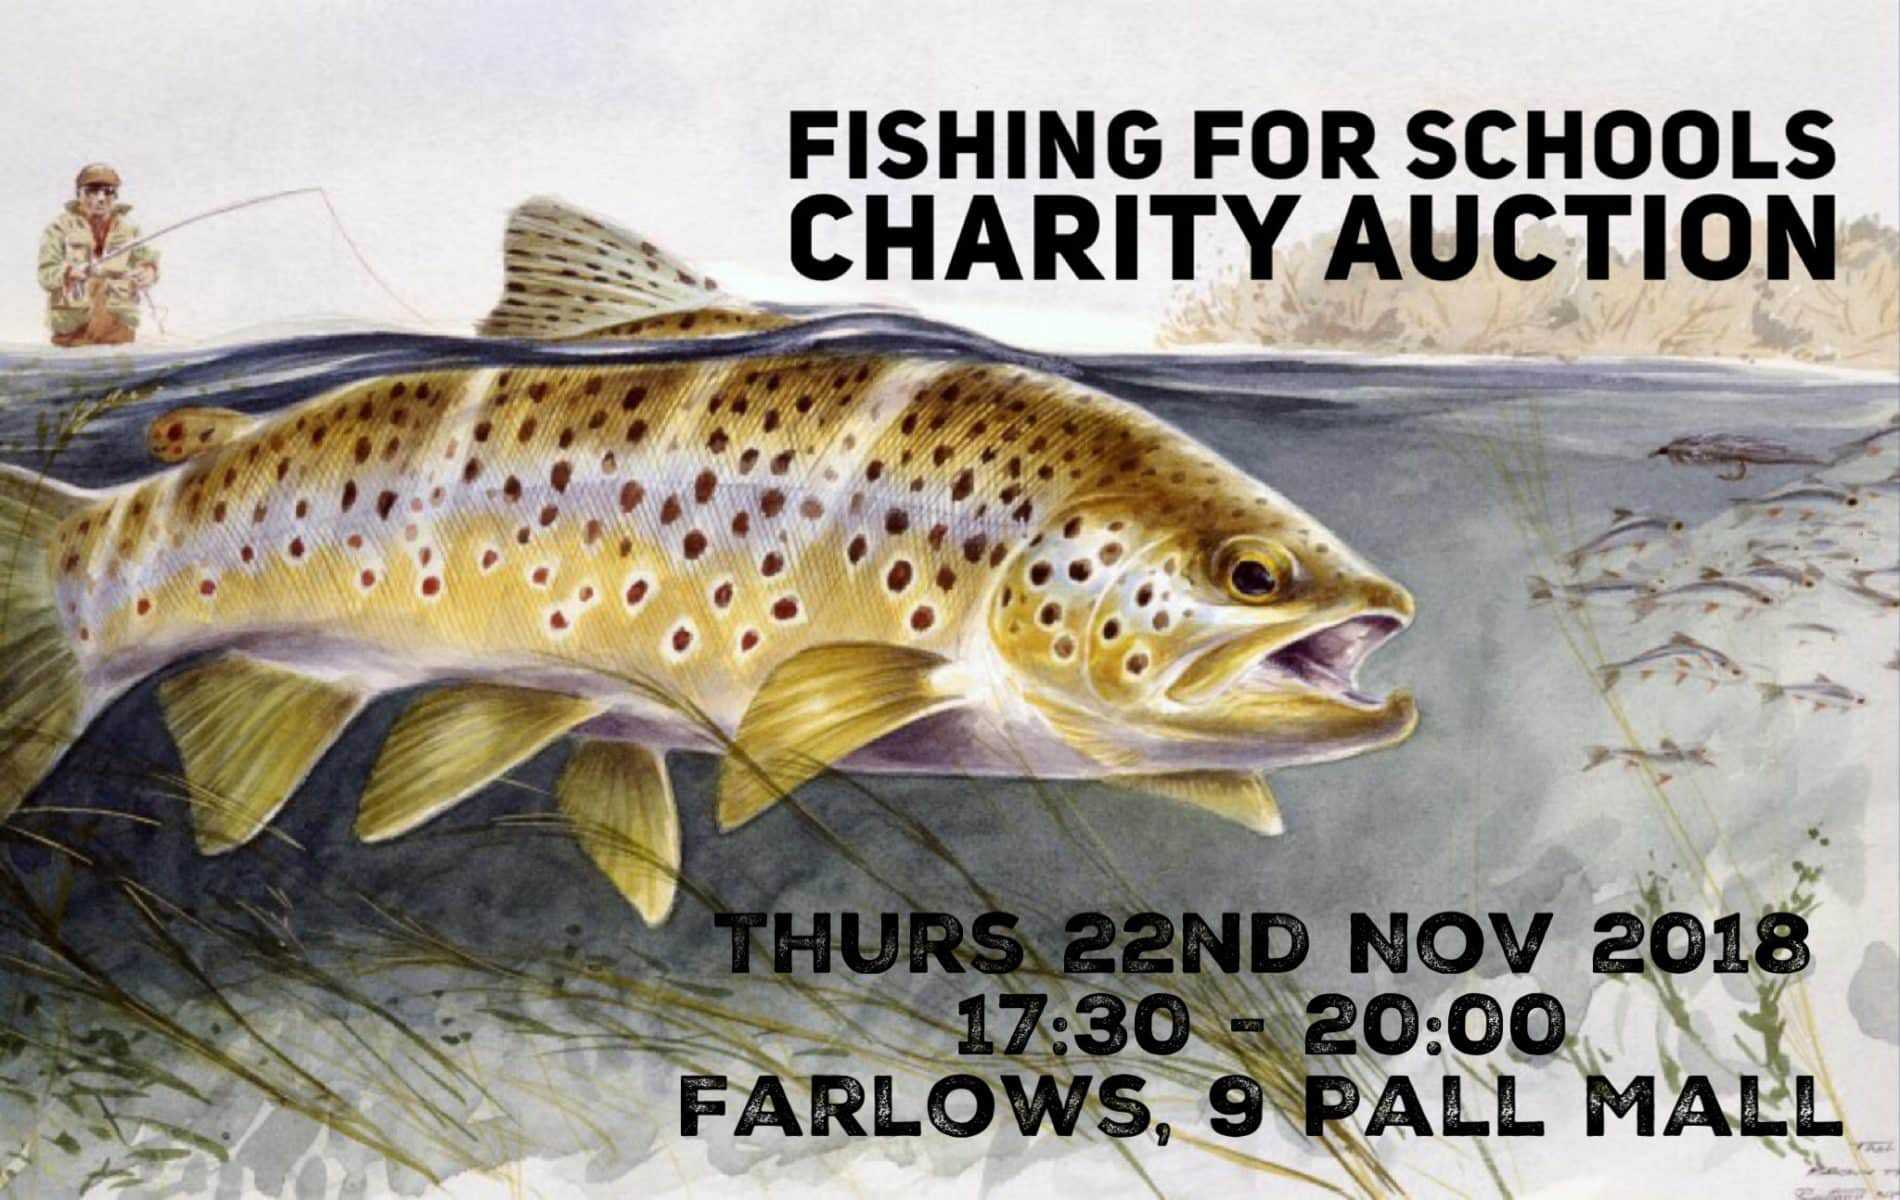 Farlows fundraiser nets more than £4,000 for Fishing for Schools